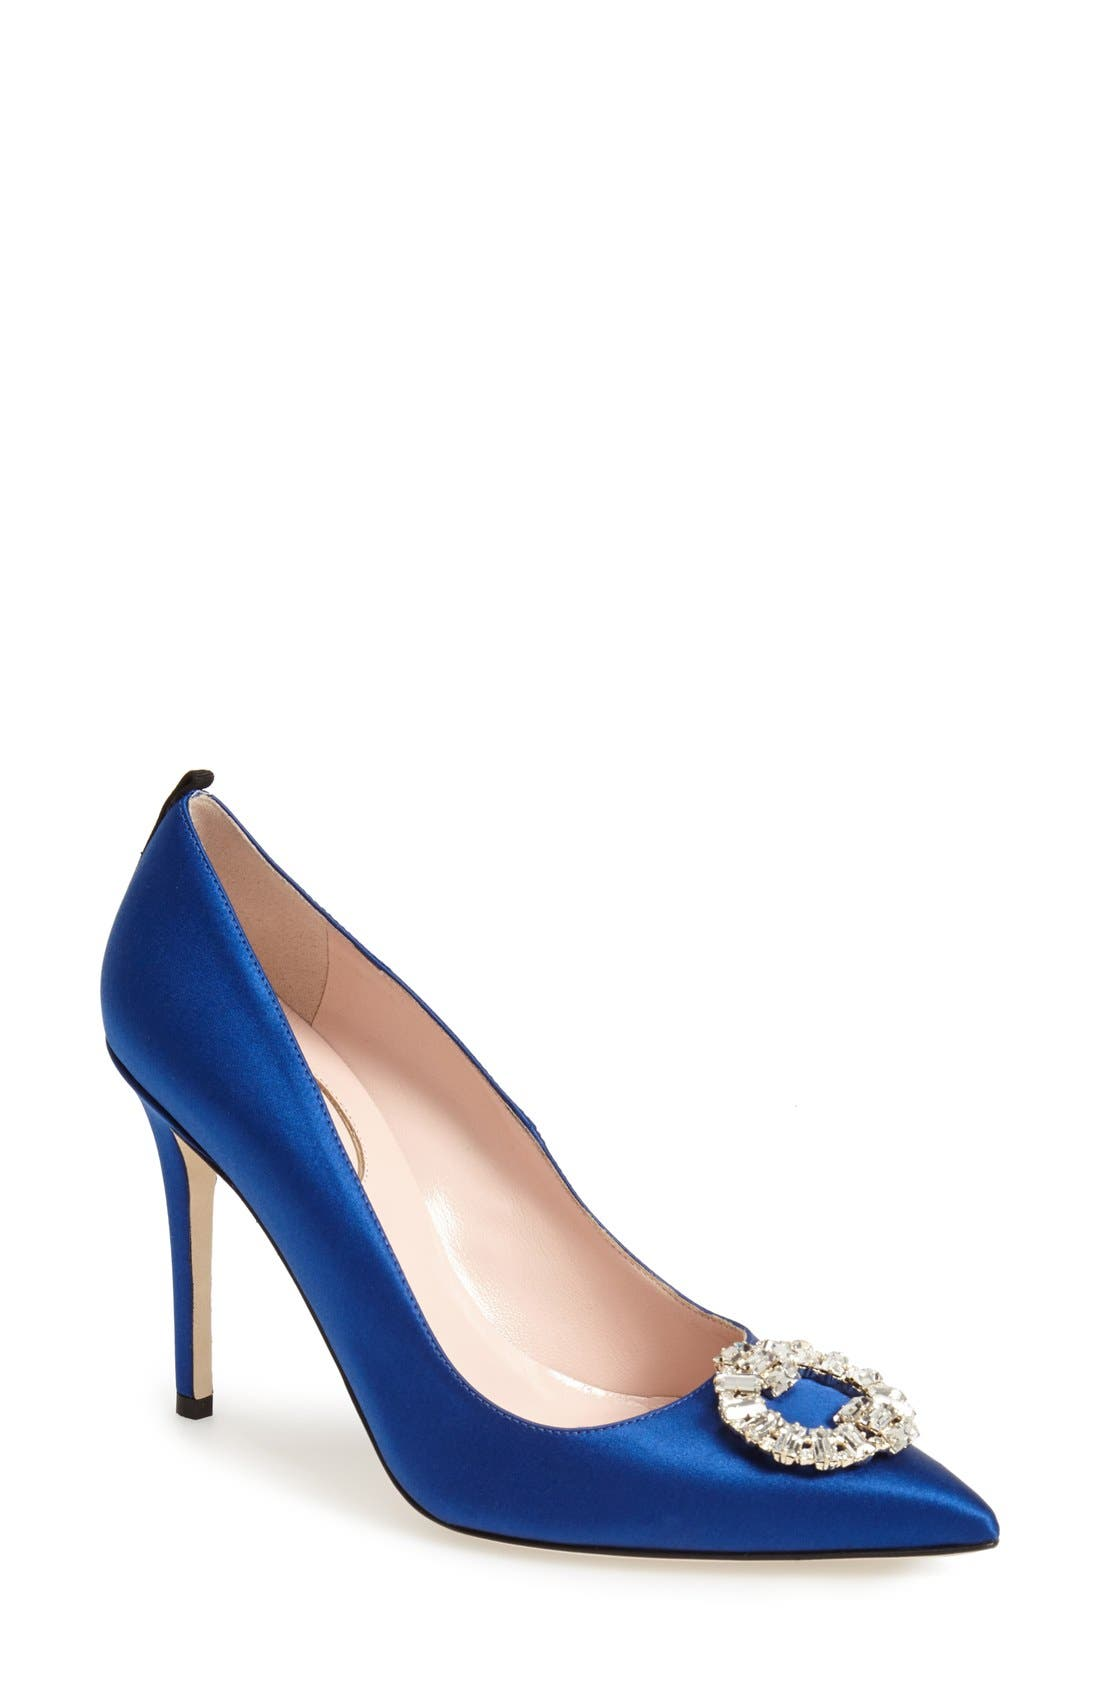 'Maddalena' Pointy Toe Pump,                         Main,                         color, Blue Satin